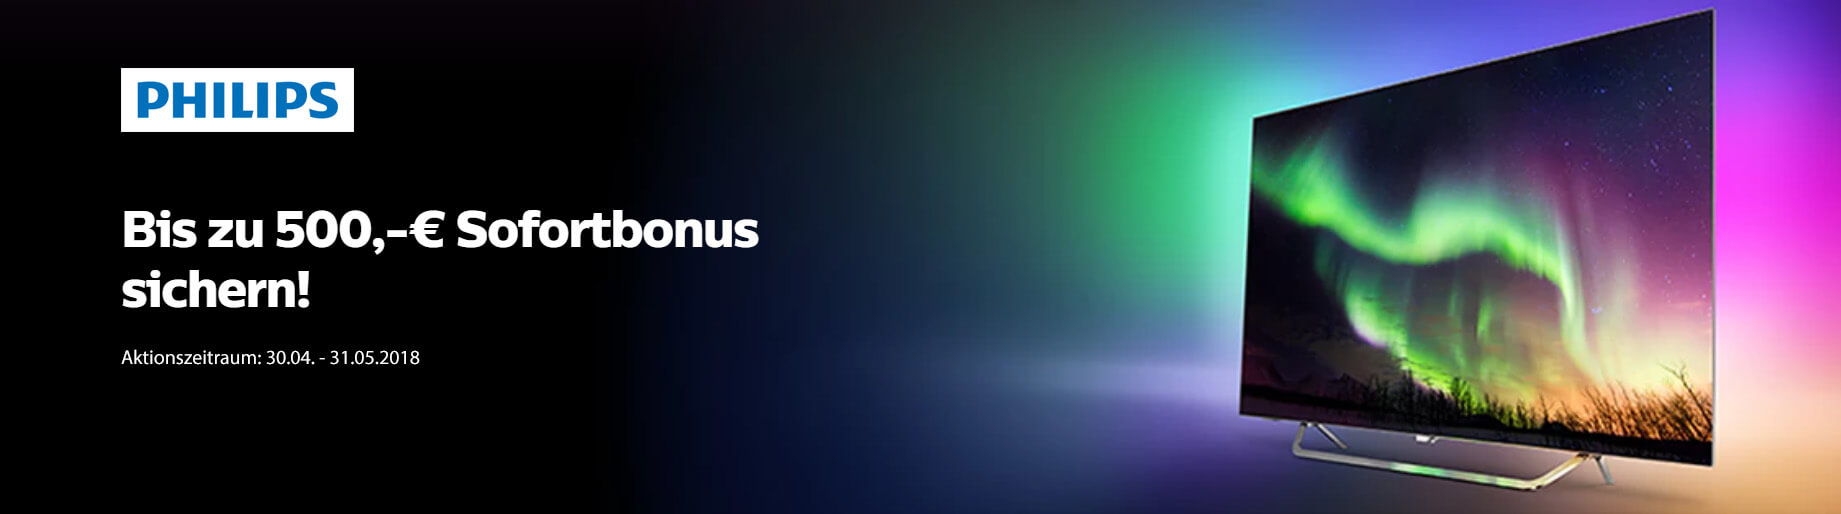 Philips TV Sofortbonus Mai 2018